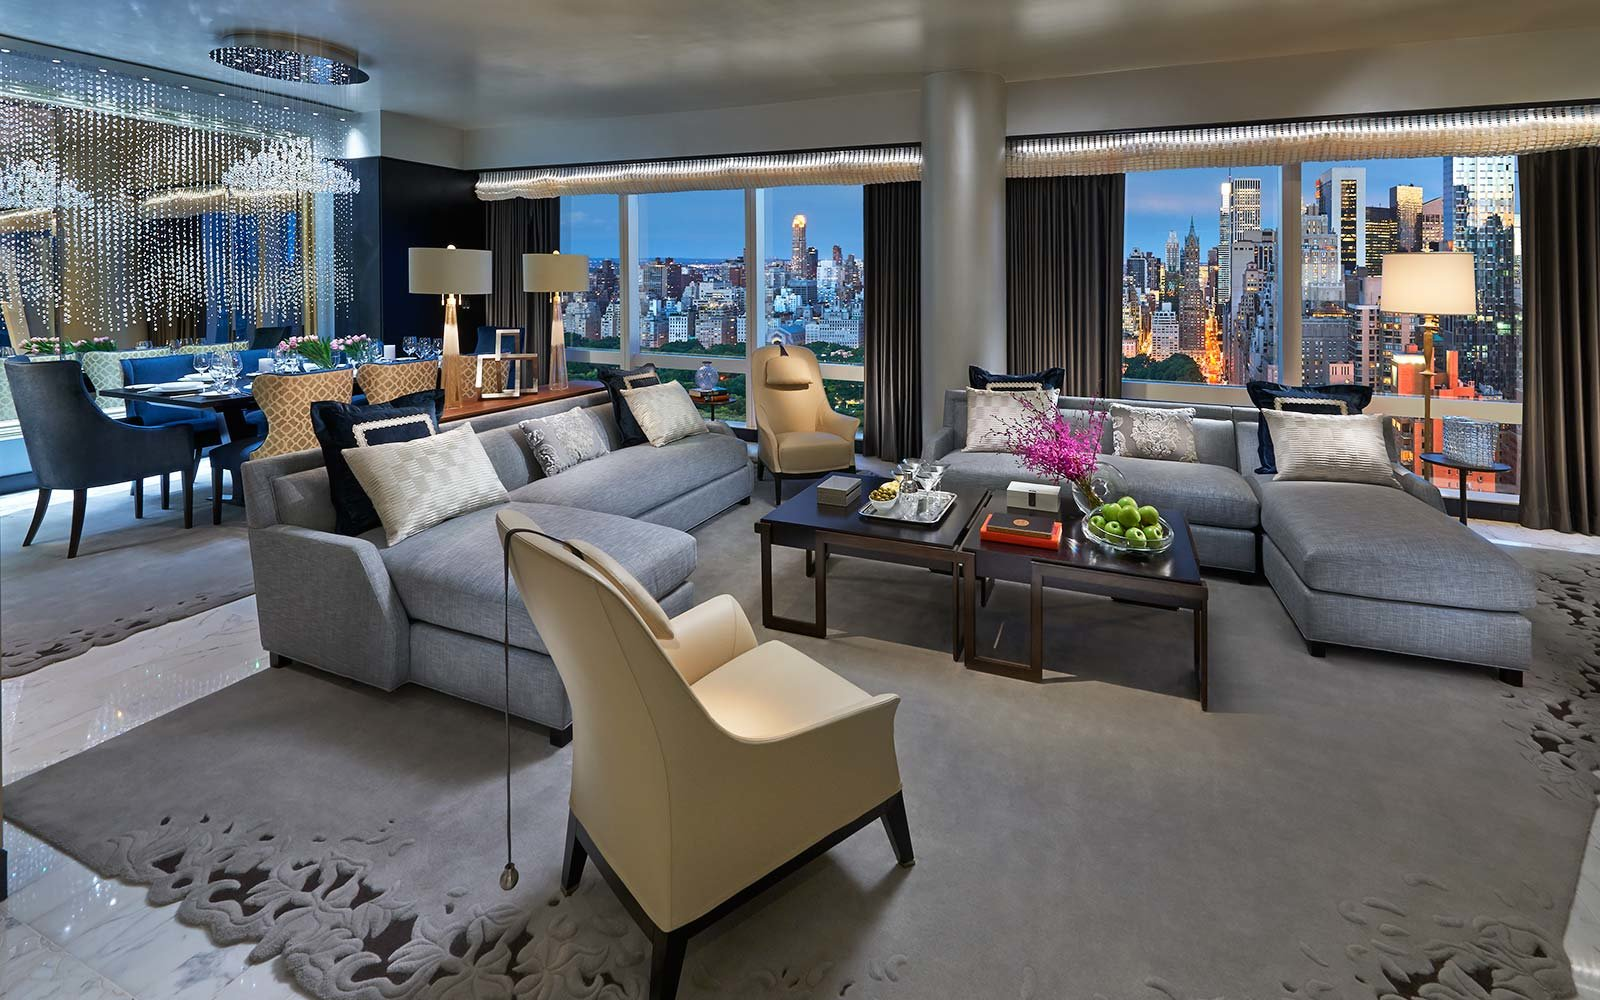 Suite 5000 at Mandarin Oriental, New York, USA